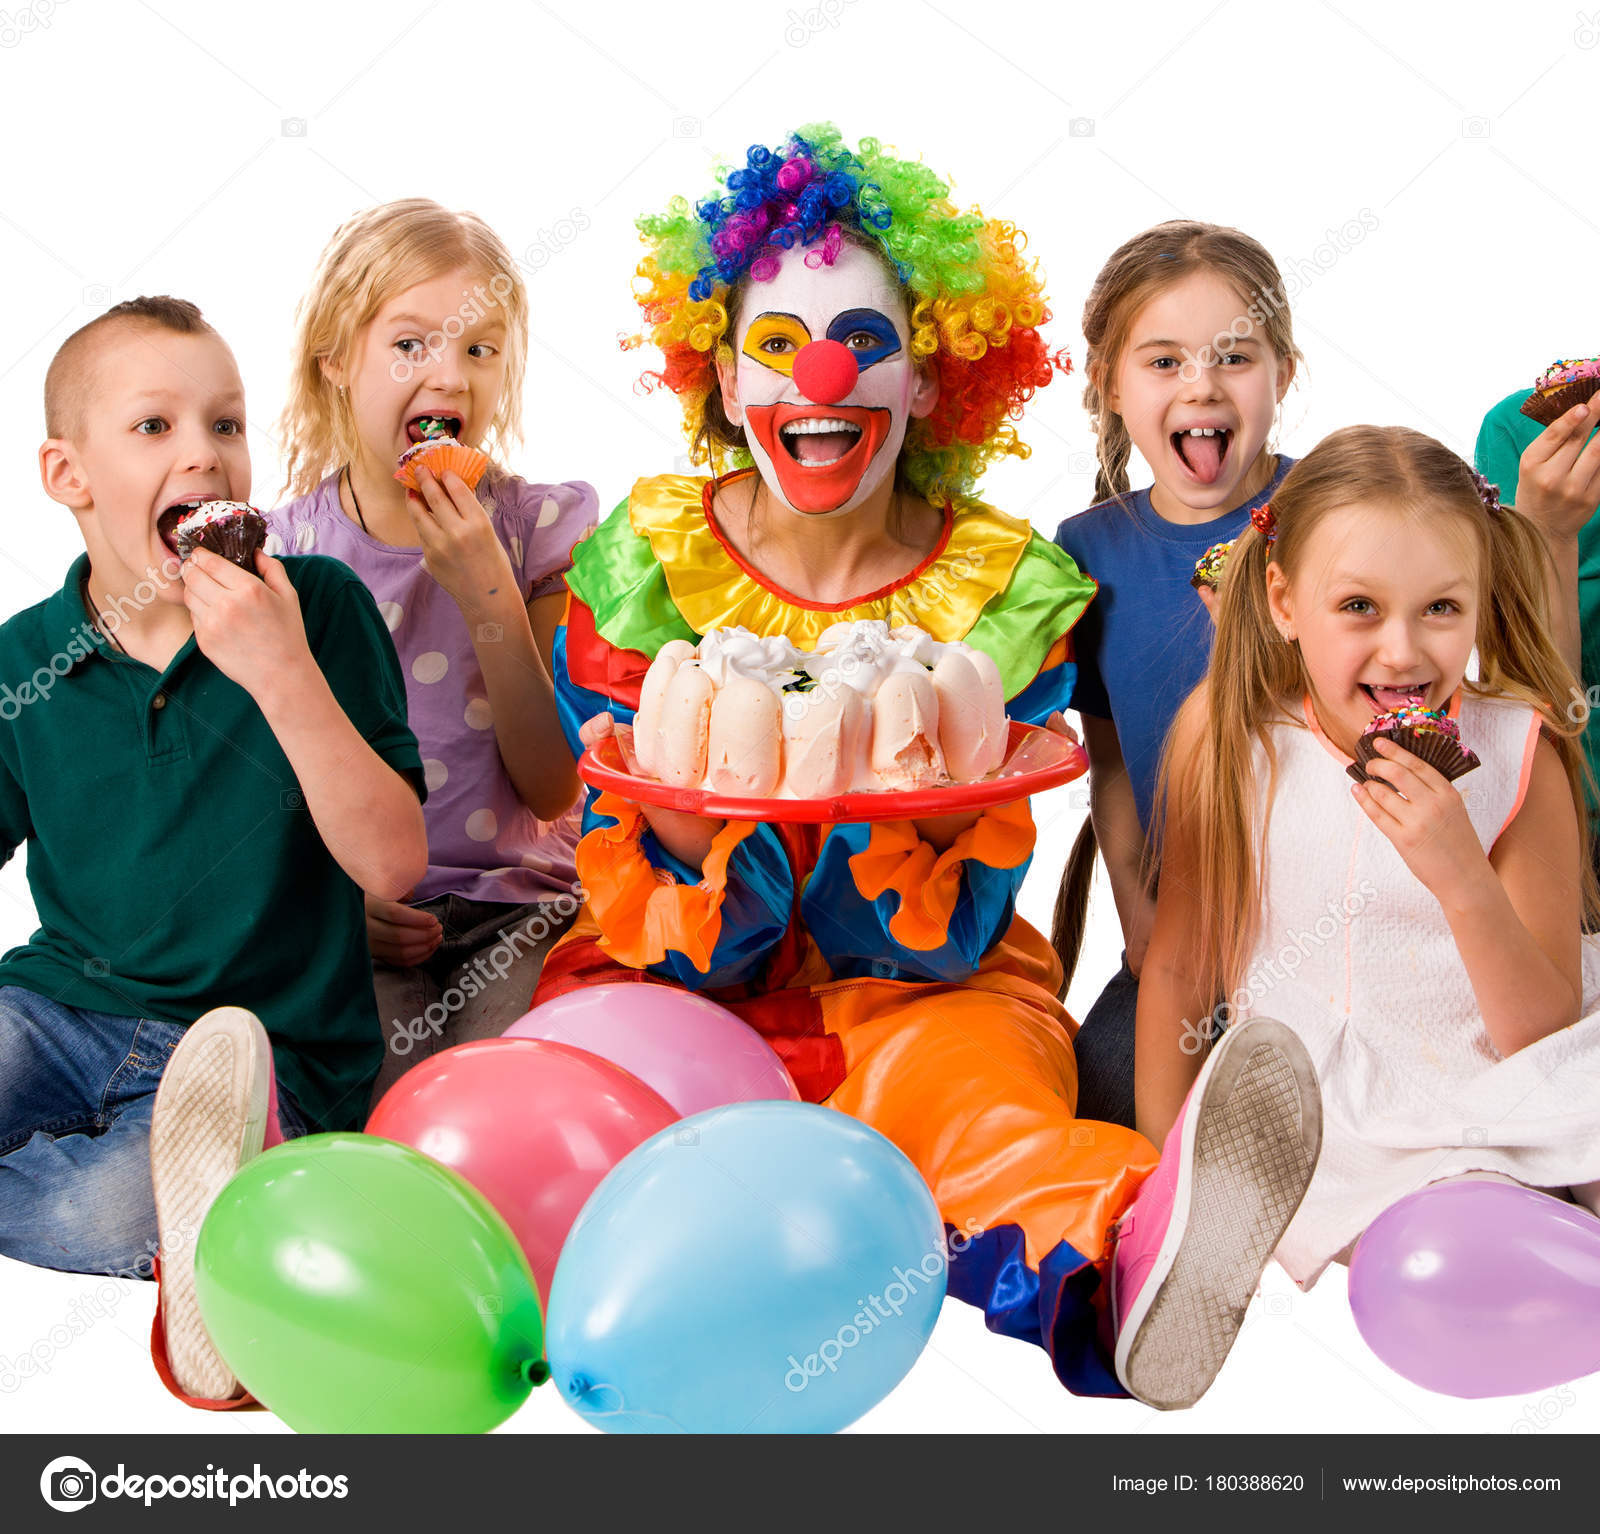 Birthday Child Clown Playing With Children Who Eat Cake Kid Nose Bunny Fingers Prank Fun Of Group People Pose For Camera Sit At Table White